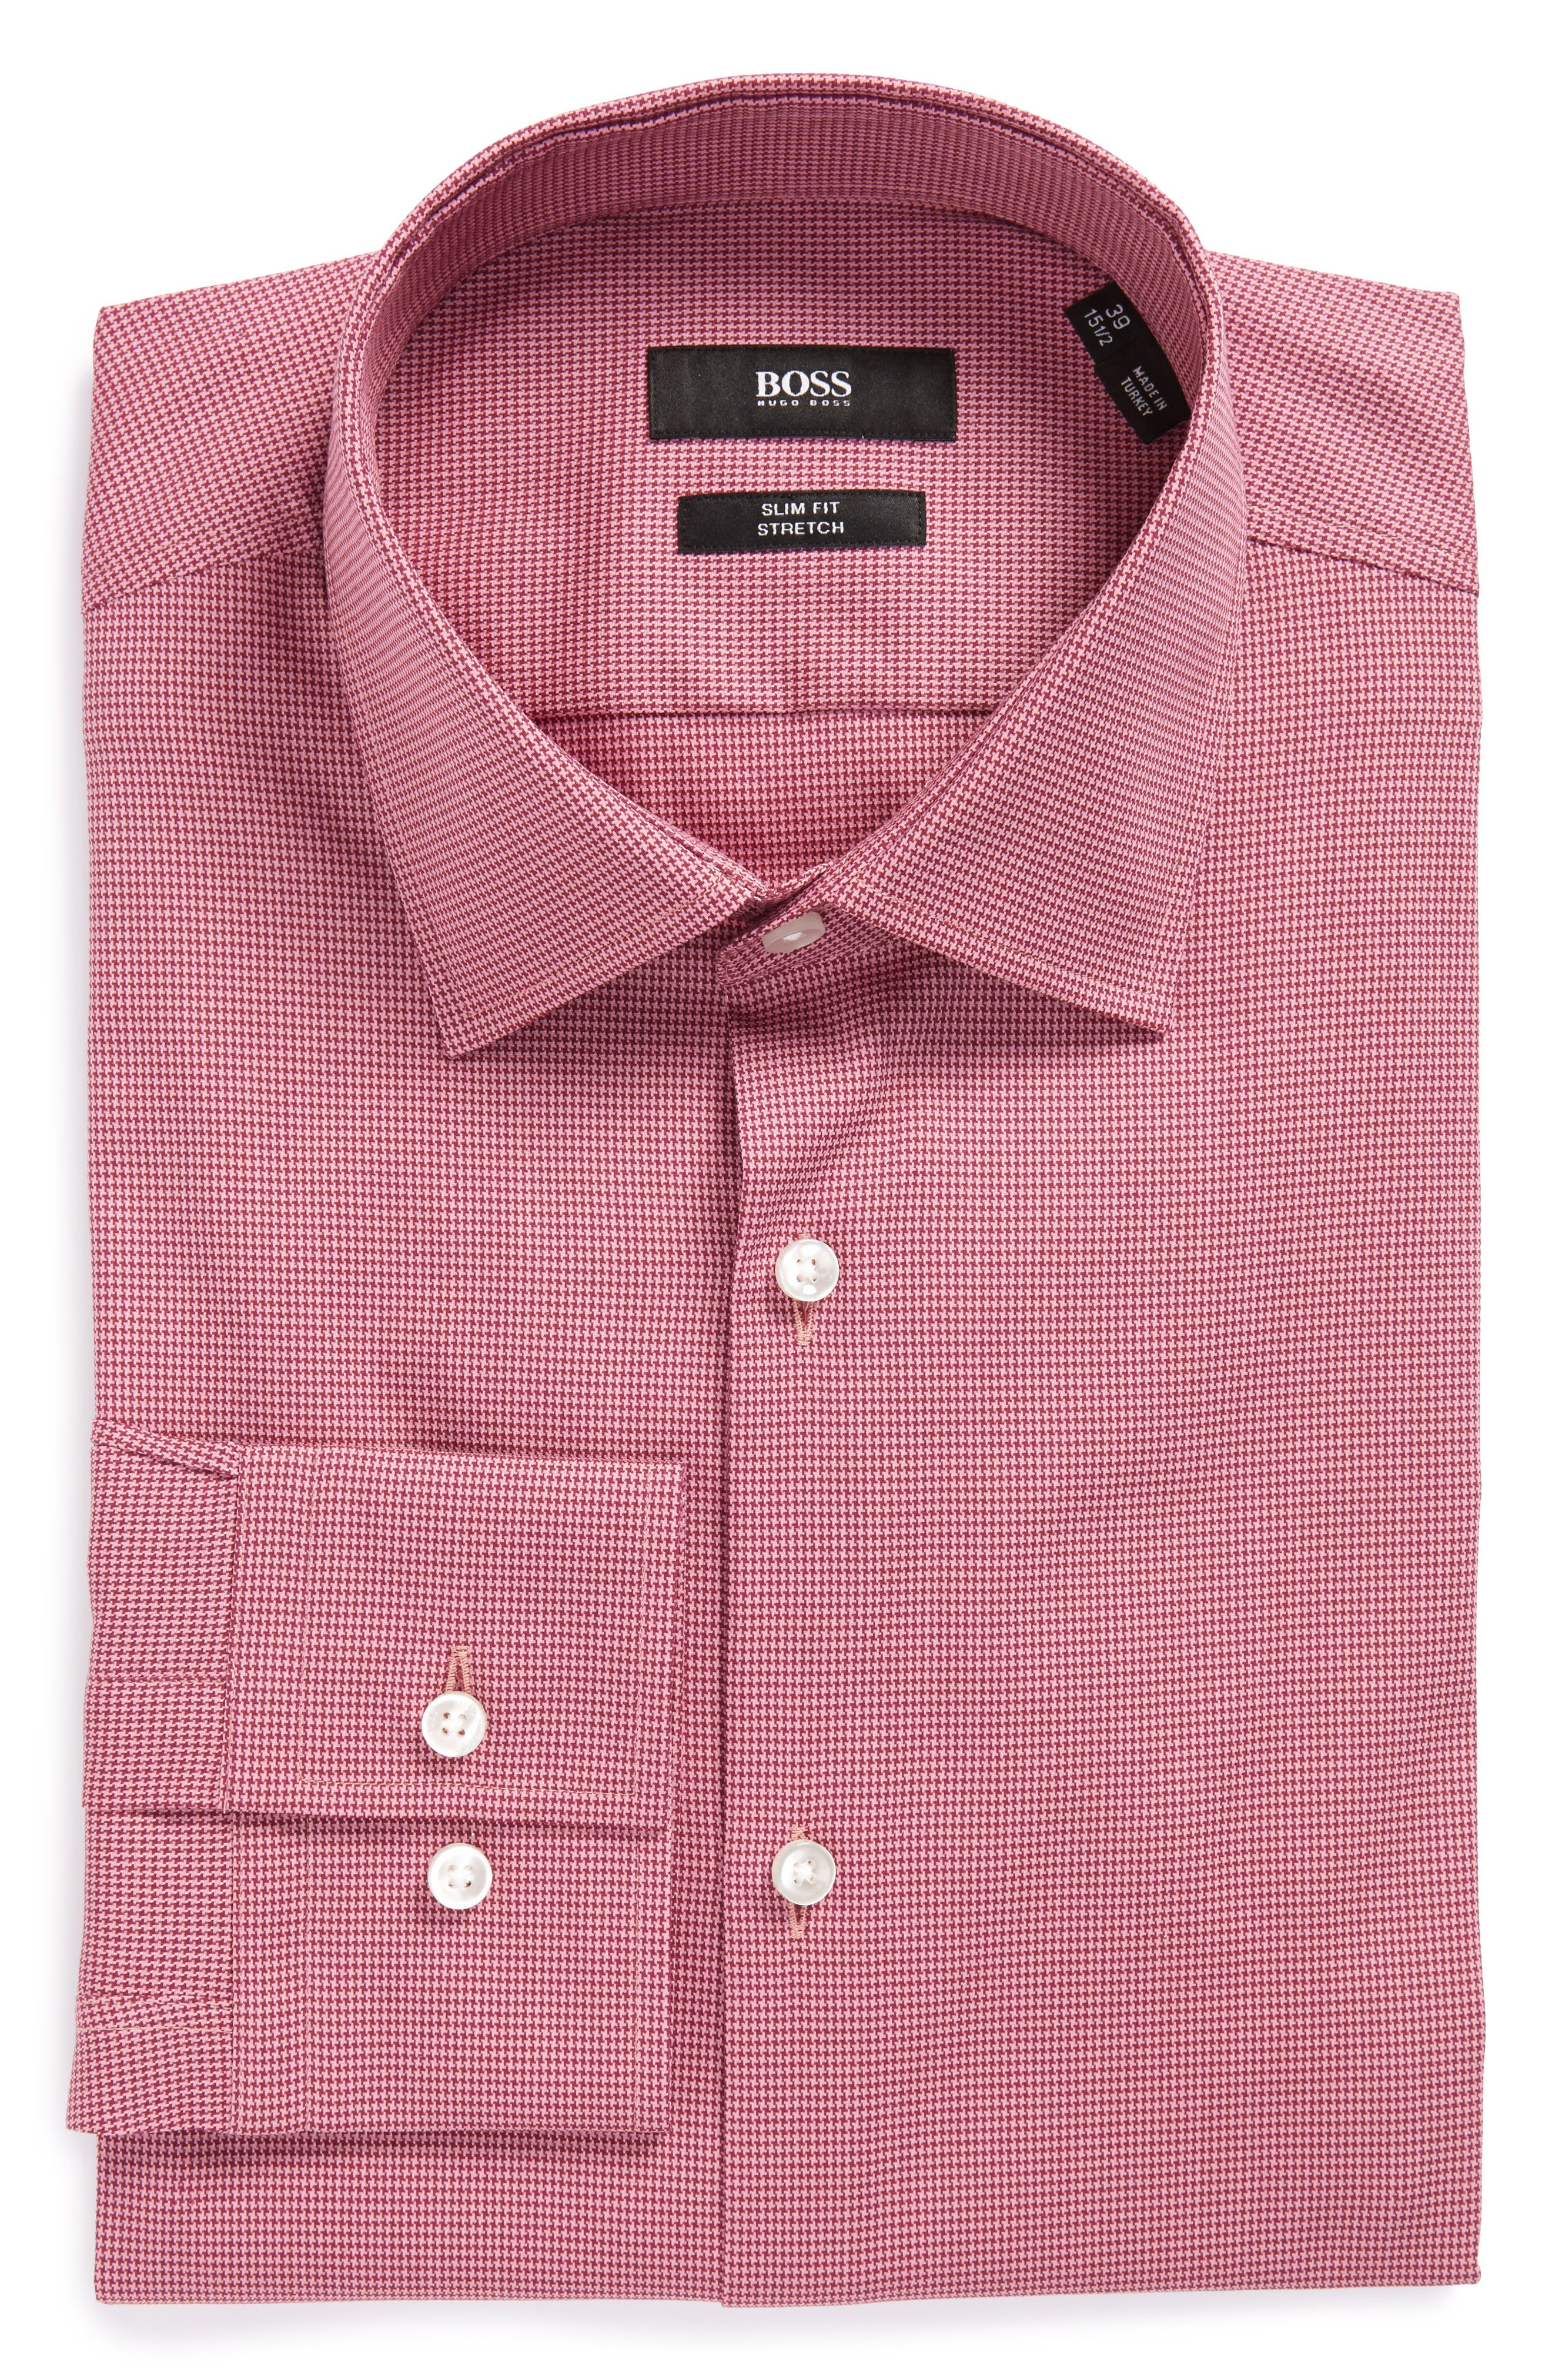 BOSS Jenno Slim Fit Houndstooth Dress Shirt